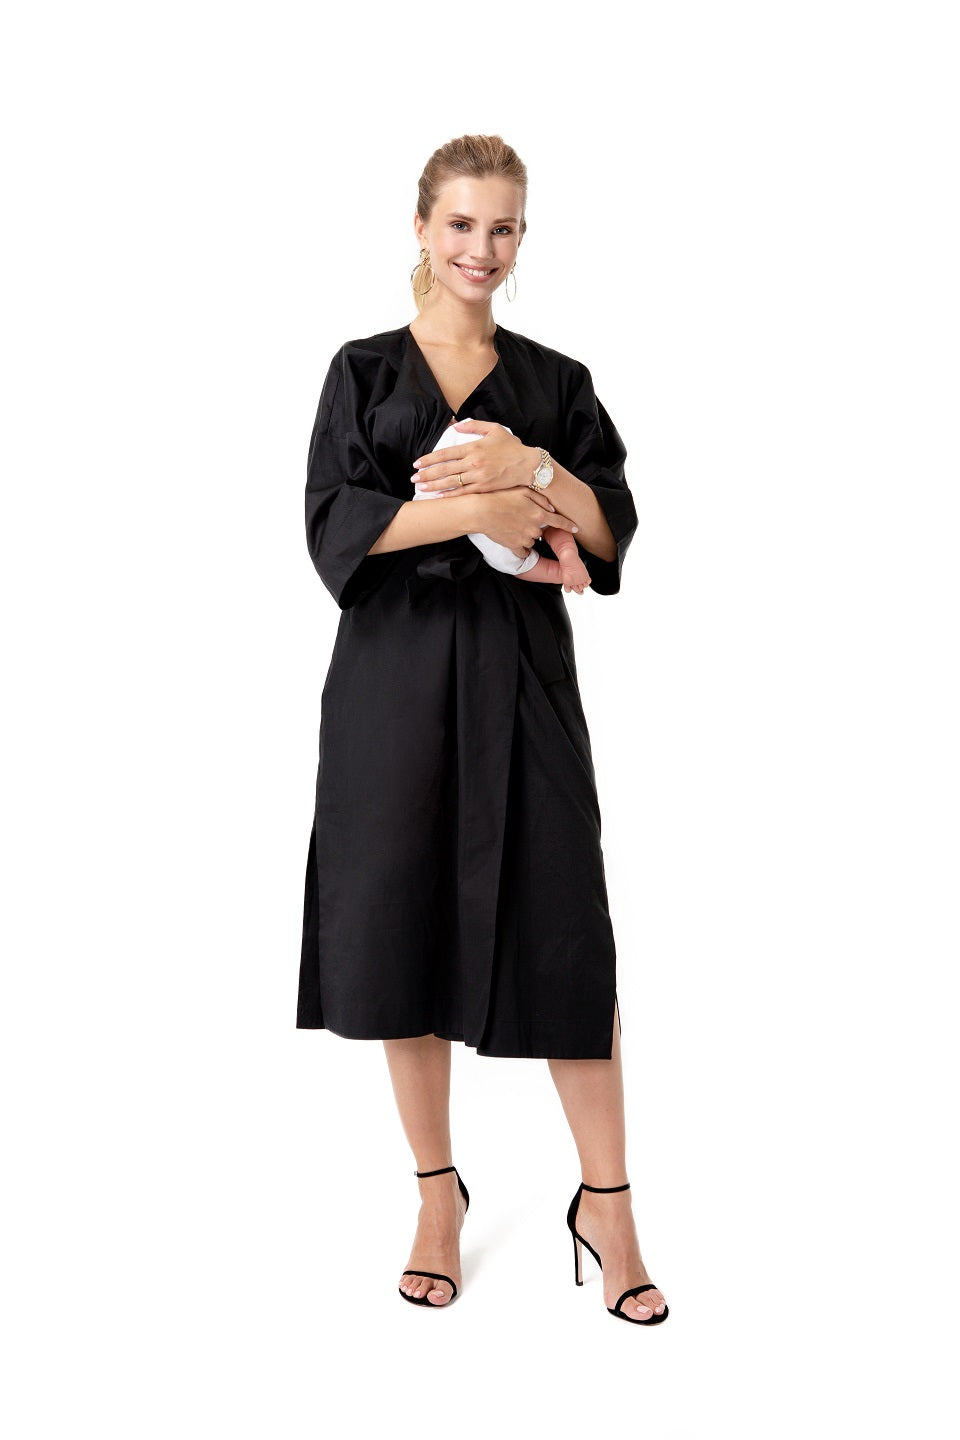 Amaterasu for Pregnancy, Nursing & Beyond Dress